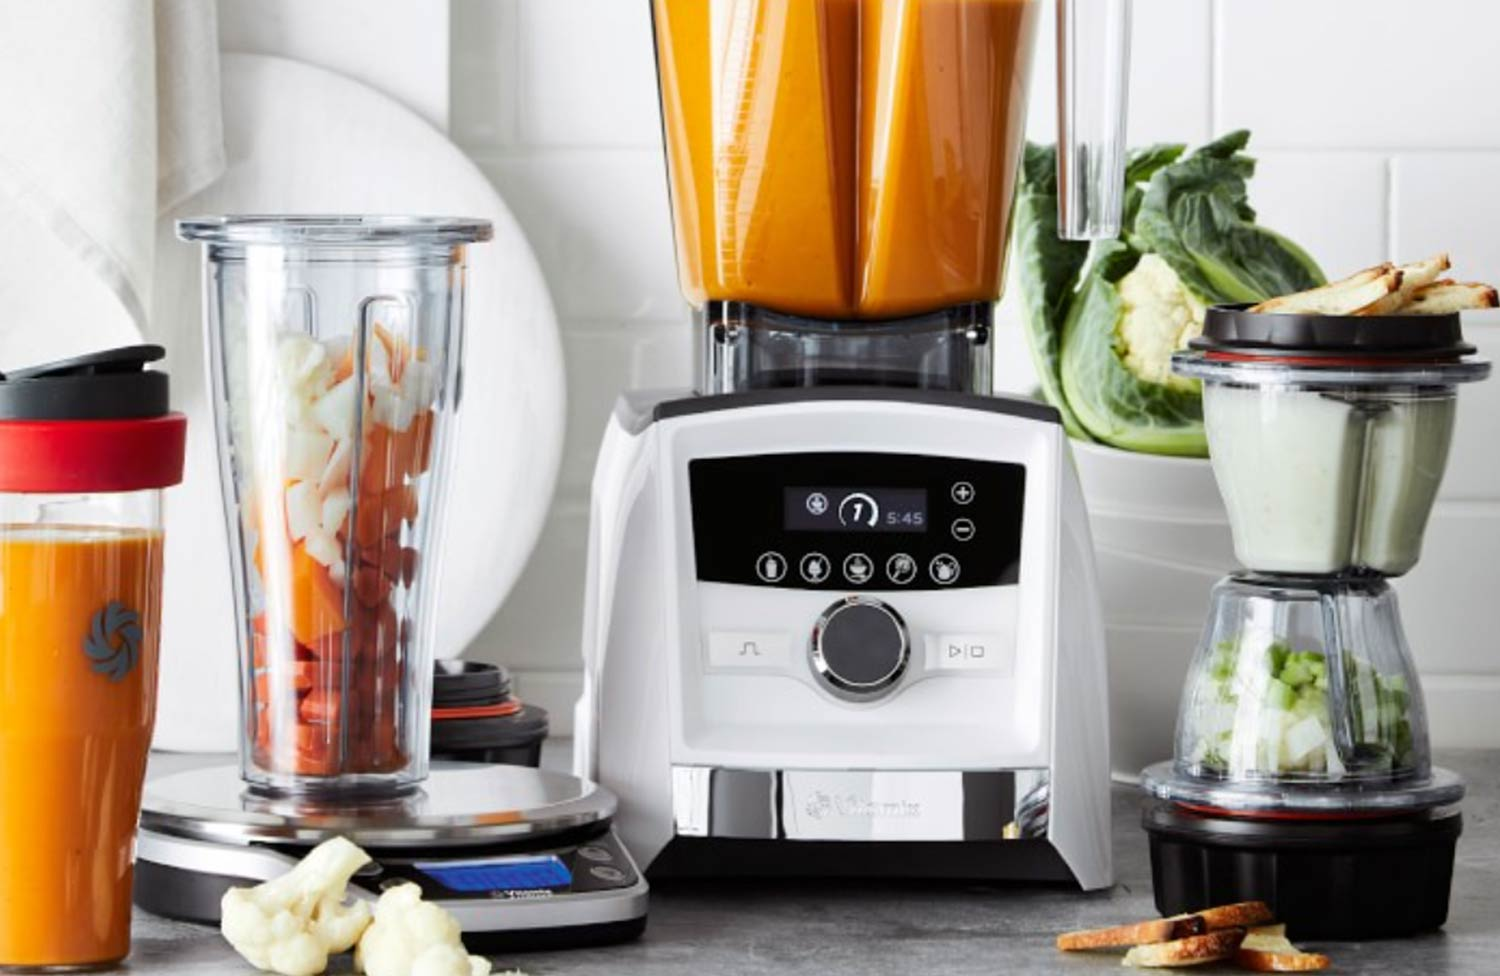 Best Combo Blender 2020 | Vitamix VS Ninja VS NutriBullet